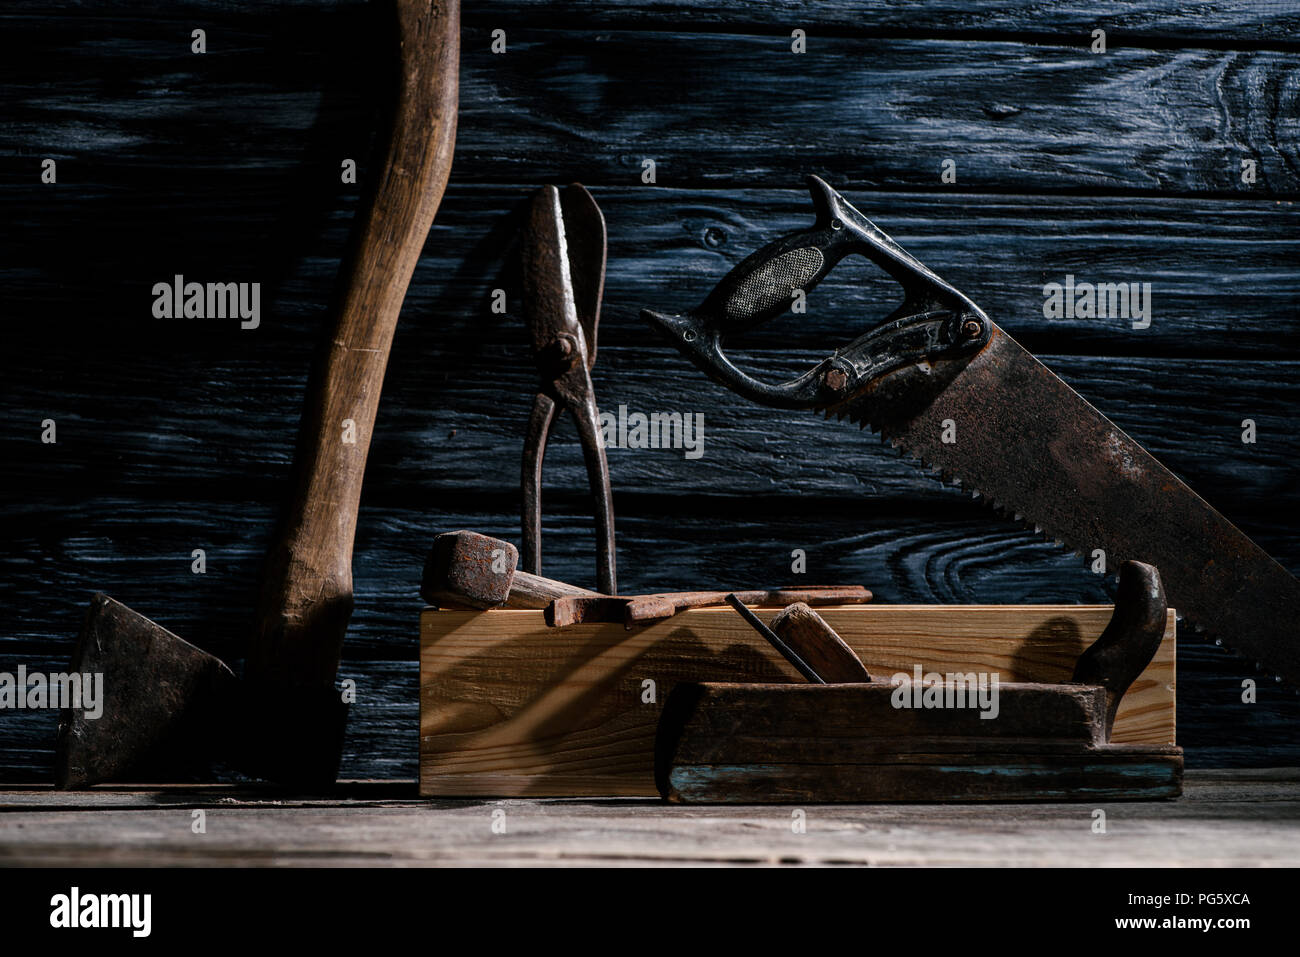 close up view of vintage carpentry tools arranged on wooden tabletop - Stock Image